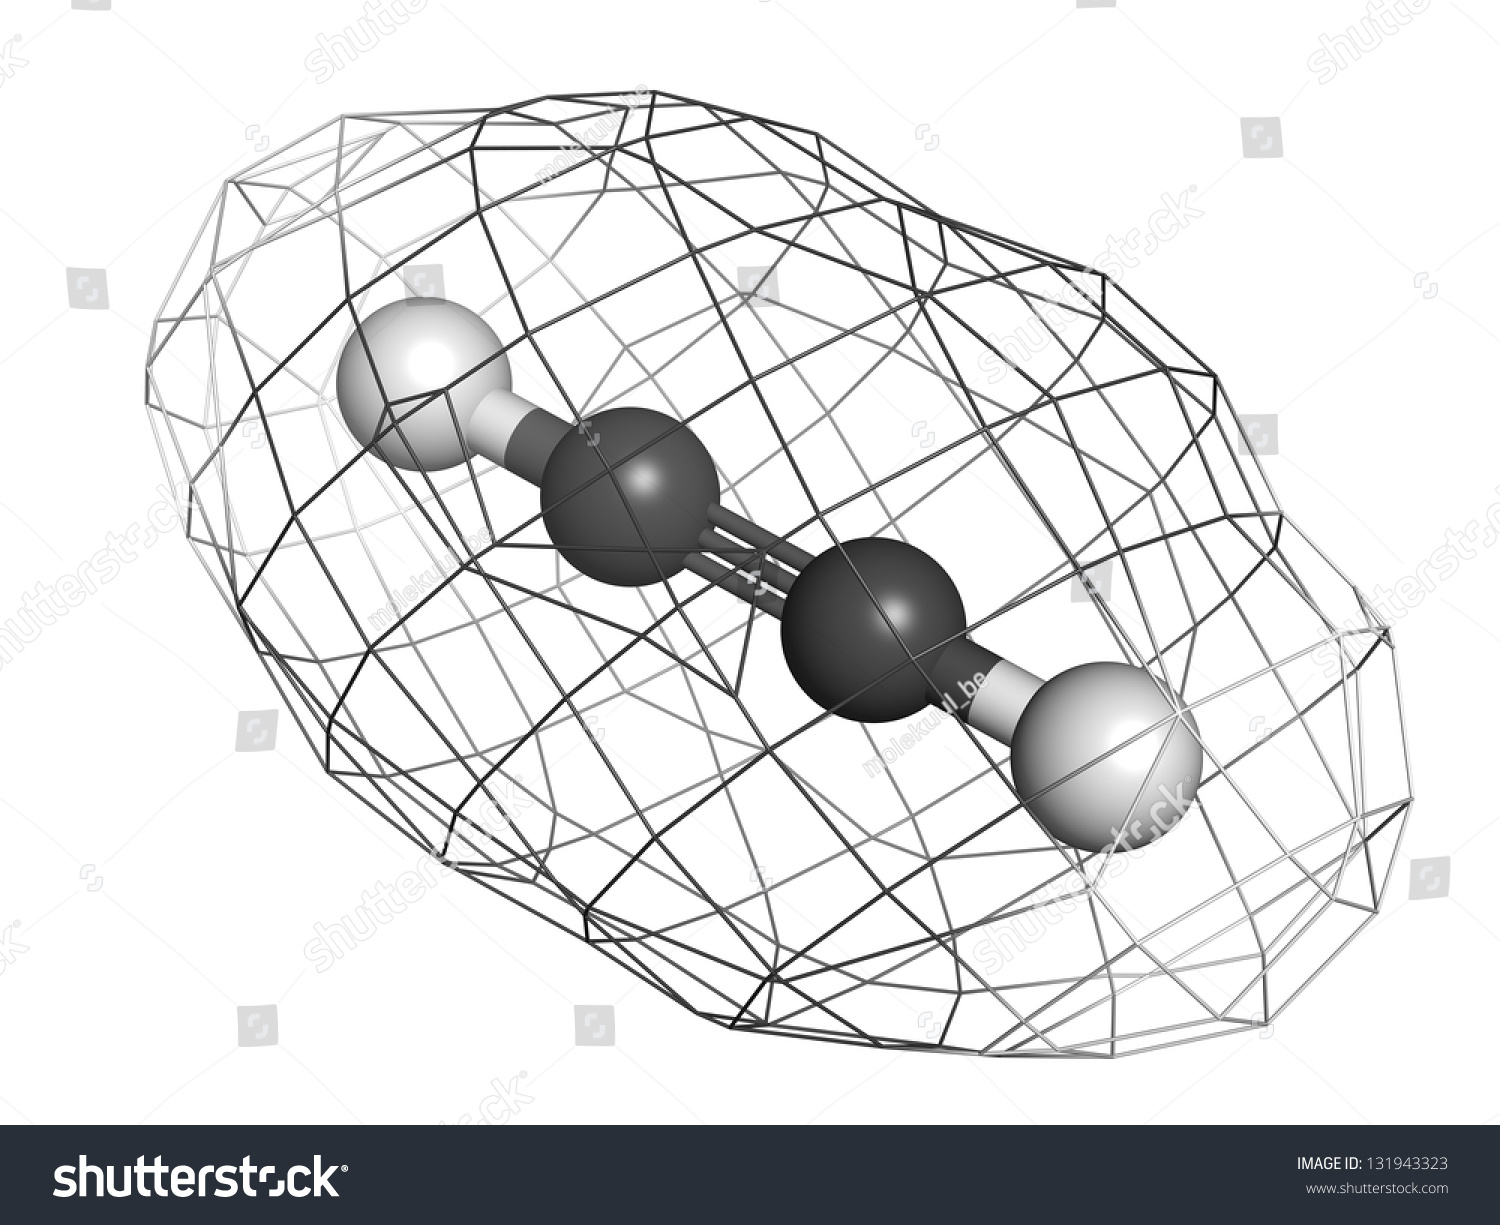 Acetylene Ethyne Gas Welding Fuel Molecular Stock Illustration Diagram Model Atoms Are Represented As Spheres